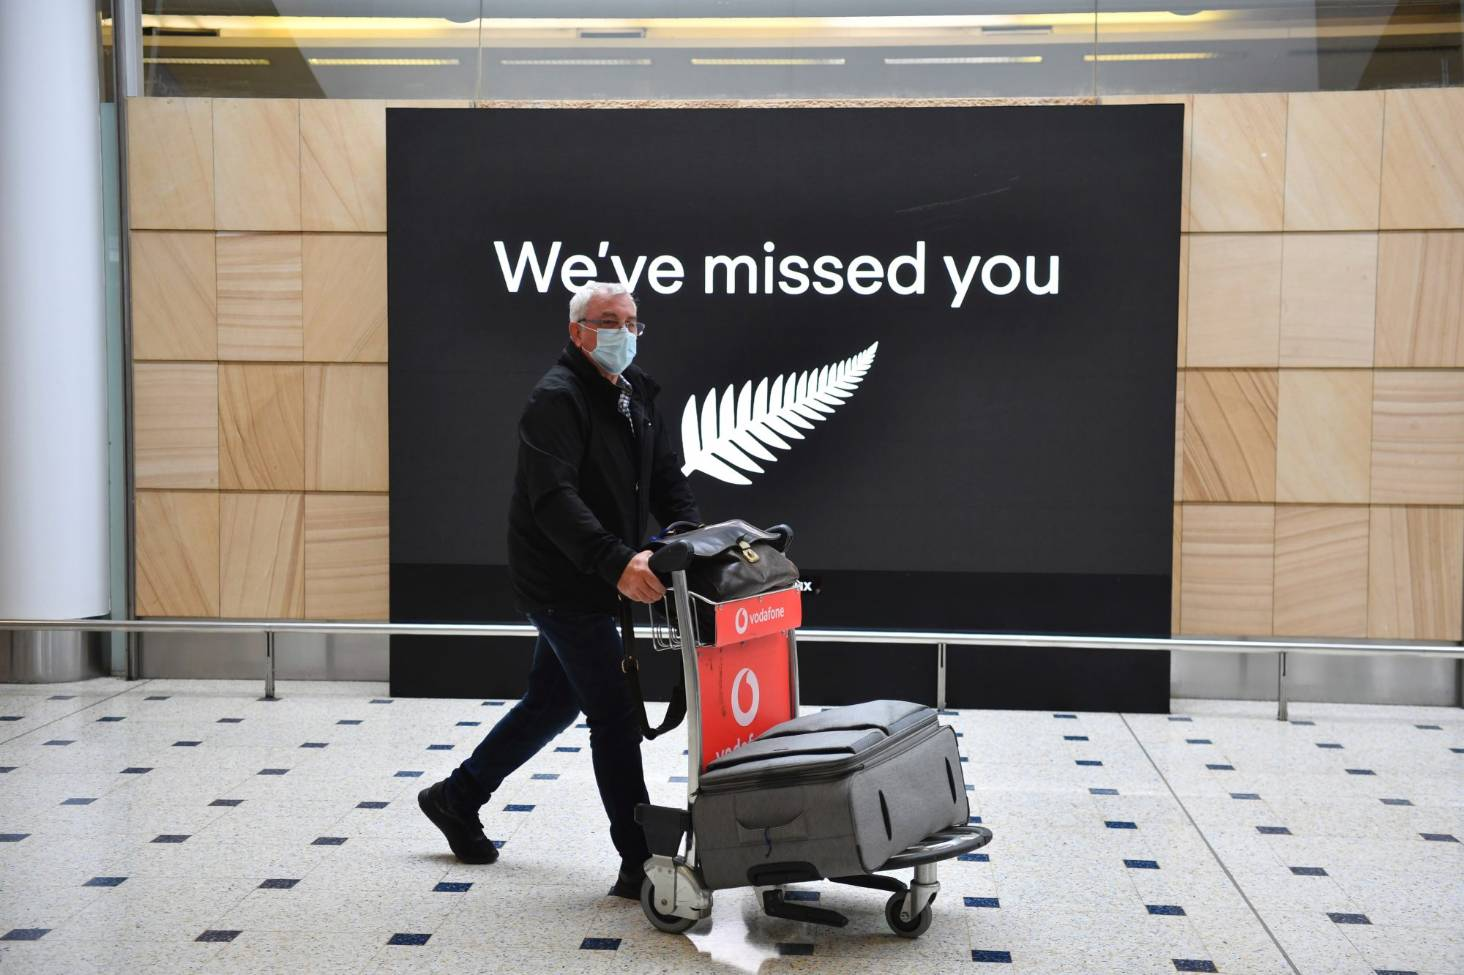 New Zealand's cabinet agrees to allow quarantine-free travel with Australia in the first quarter of 2021.